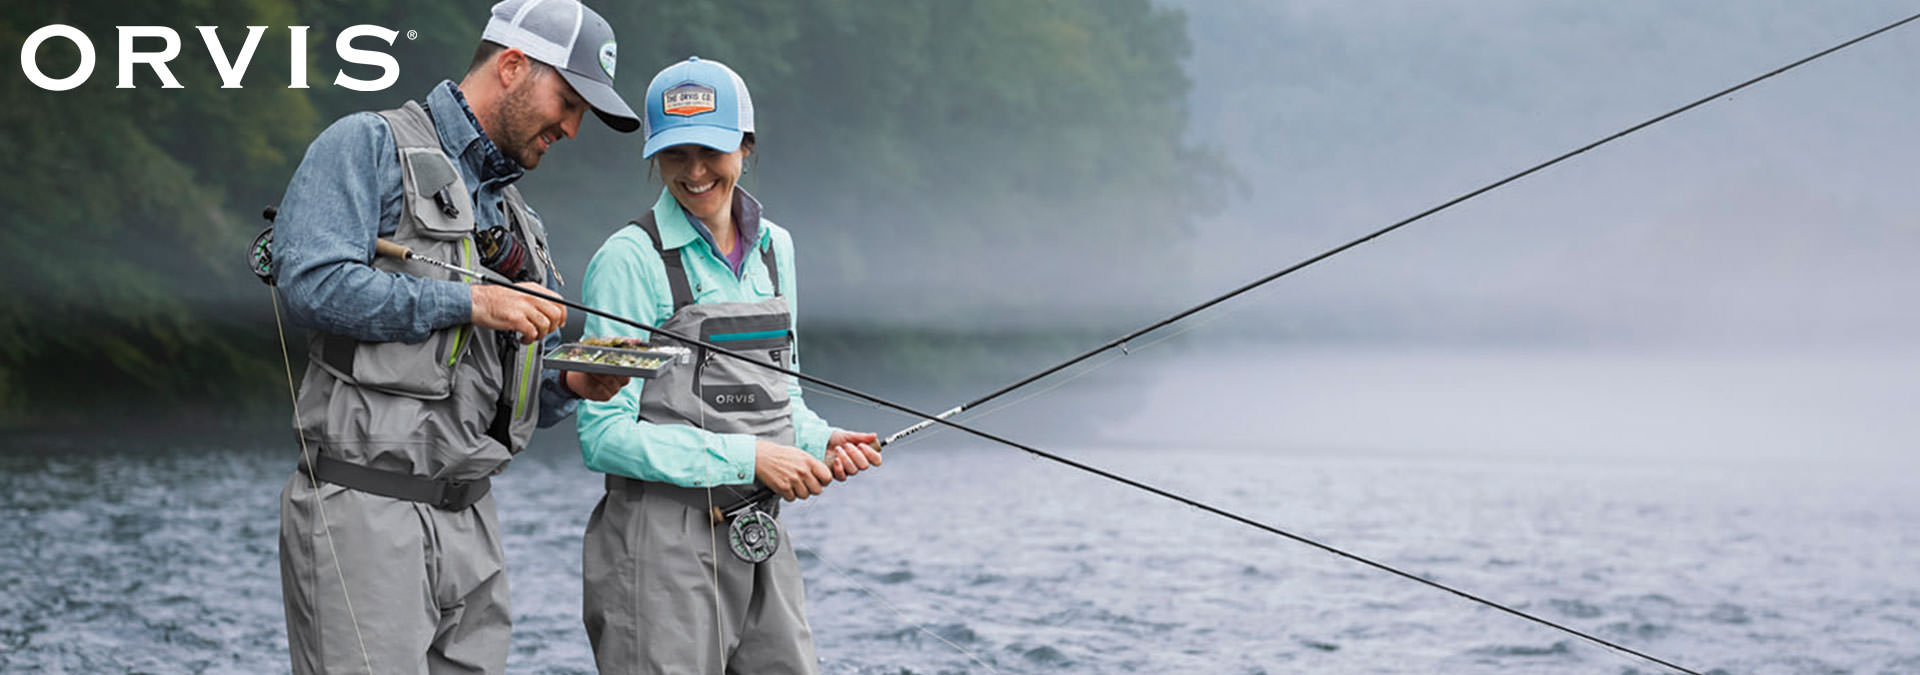 Orvis Fly Fishing Gear & Apparel